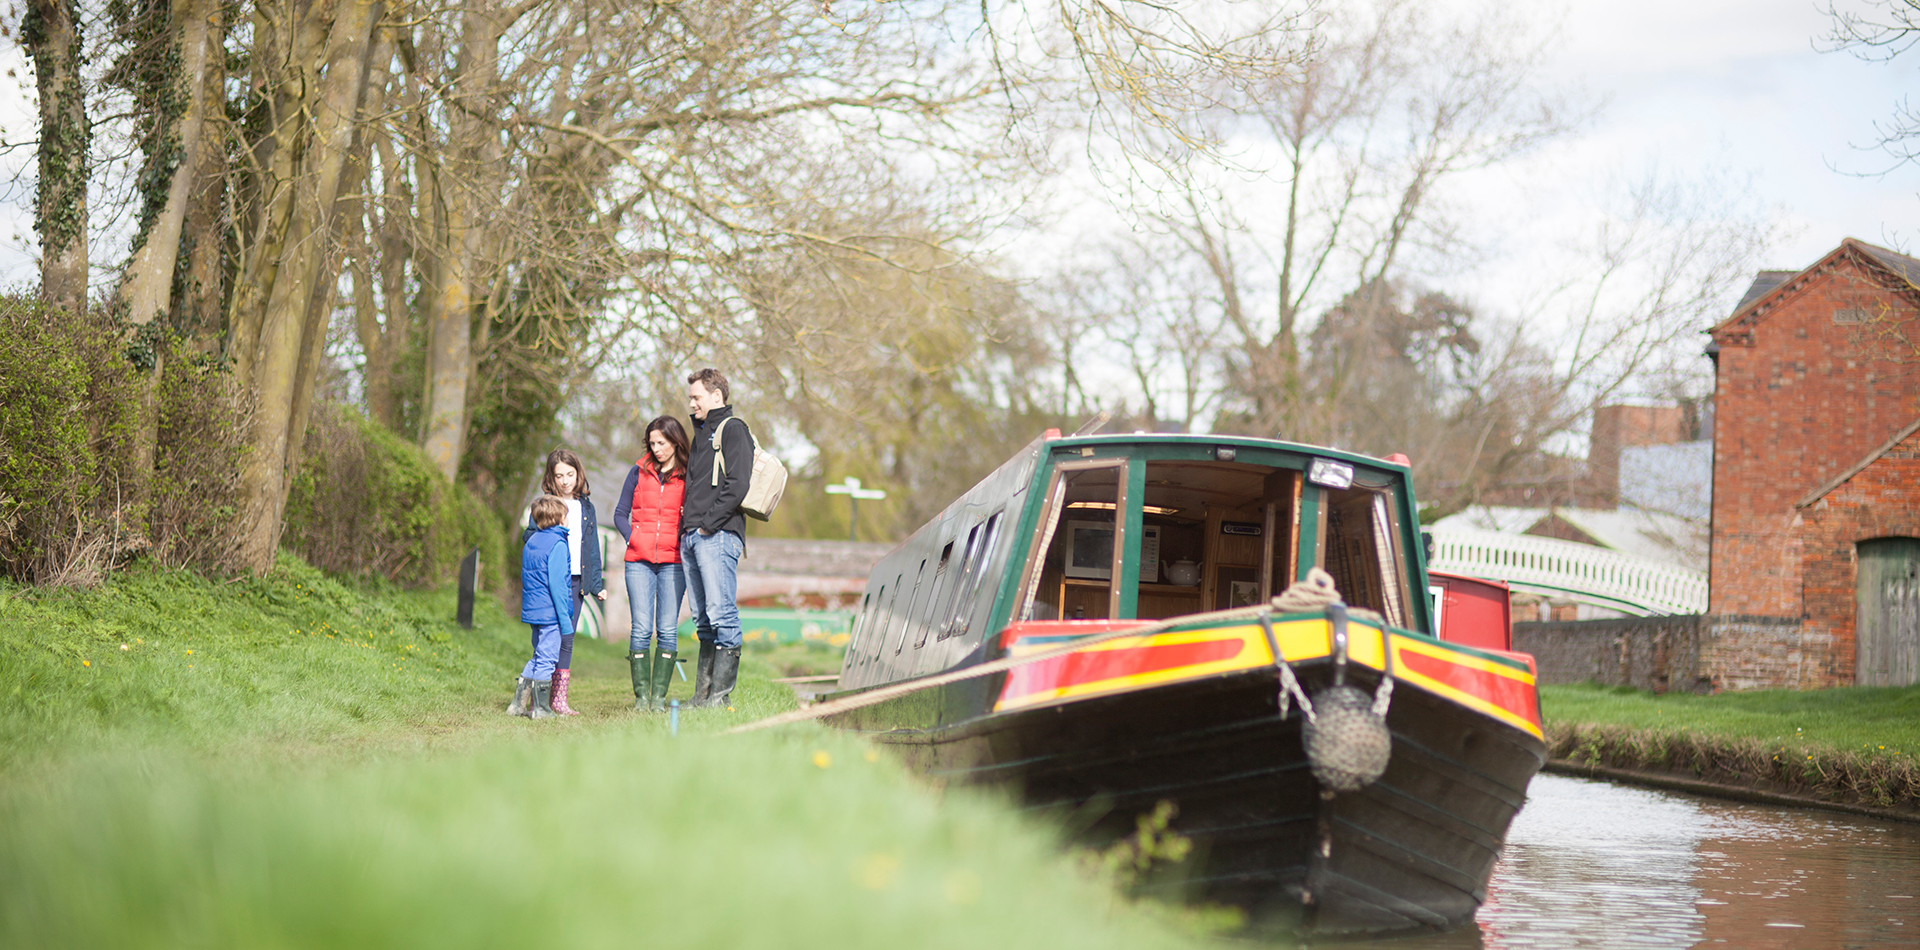 A canal boat with family